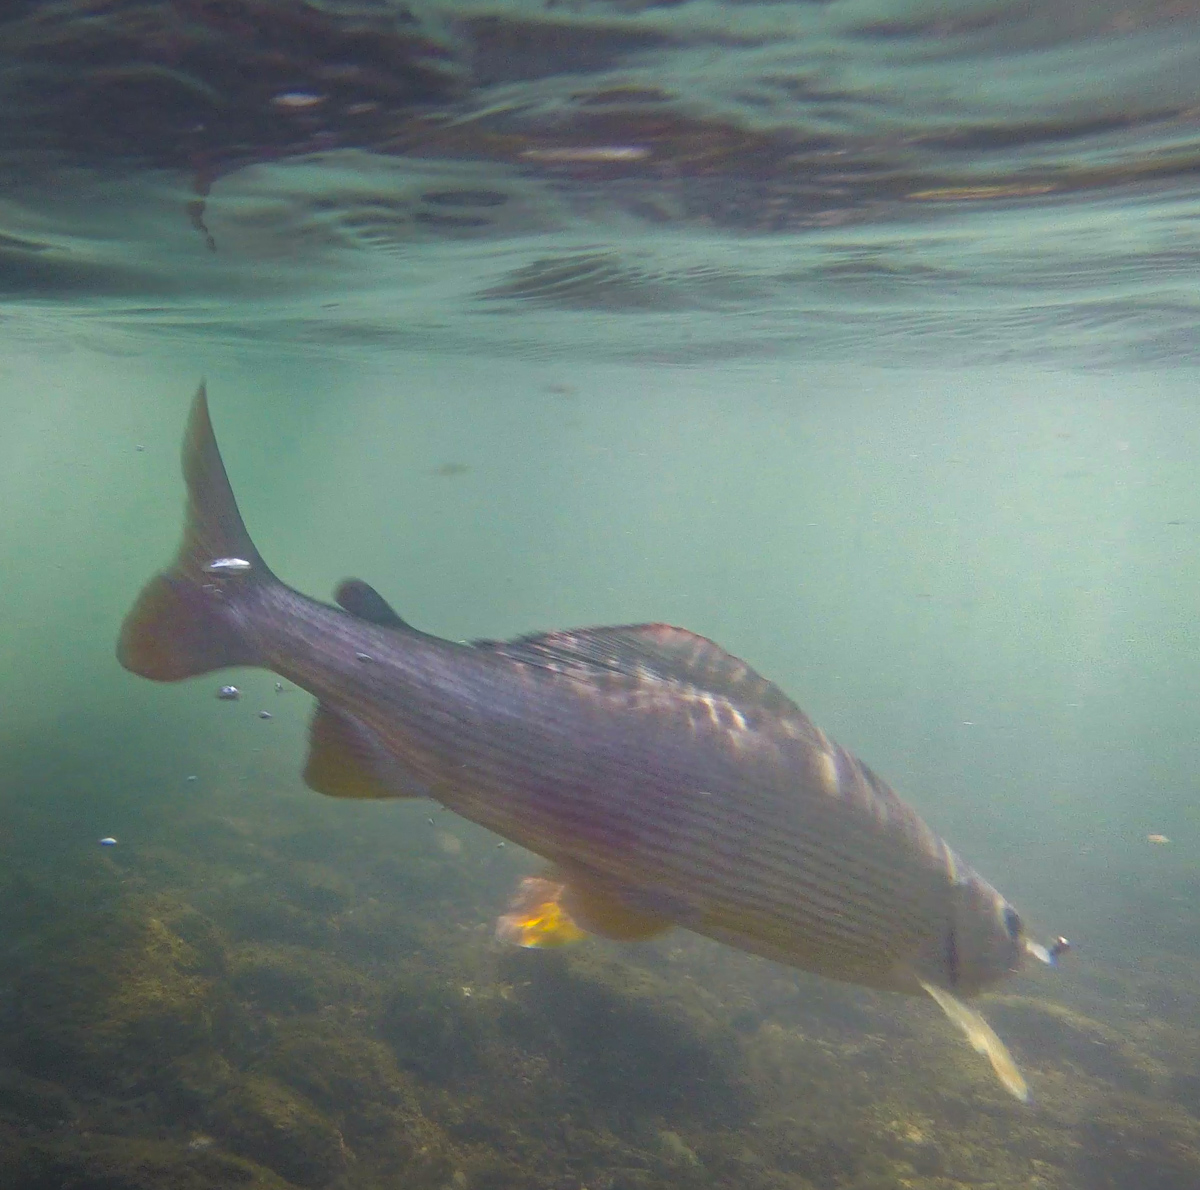 Grayling underwater in Lim River